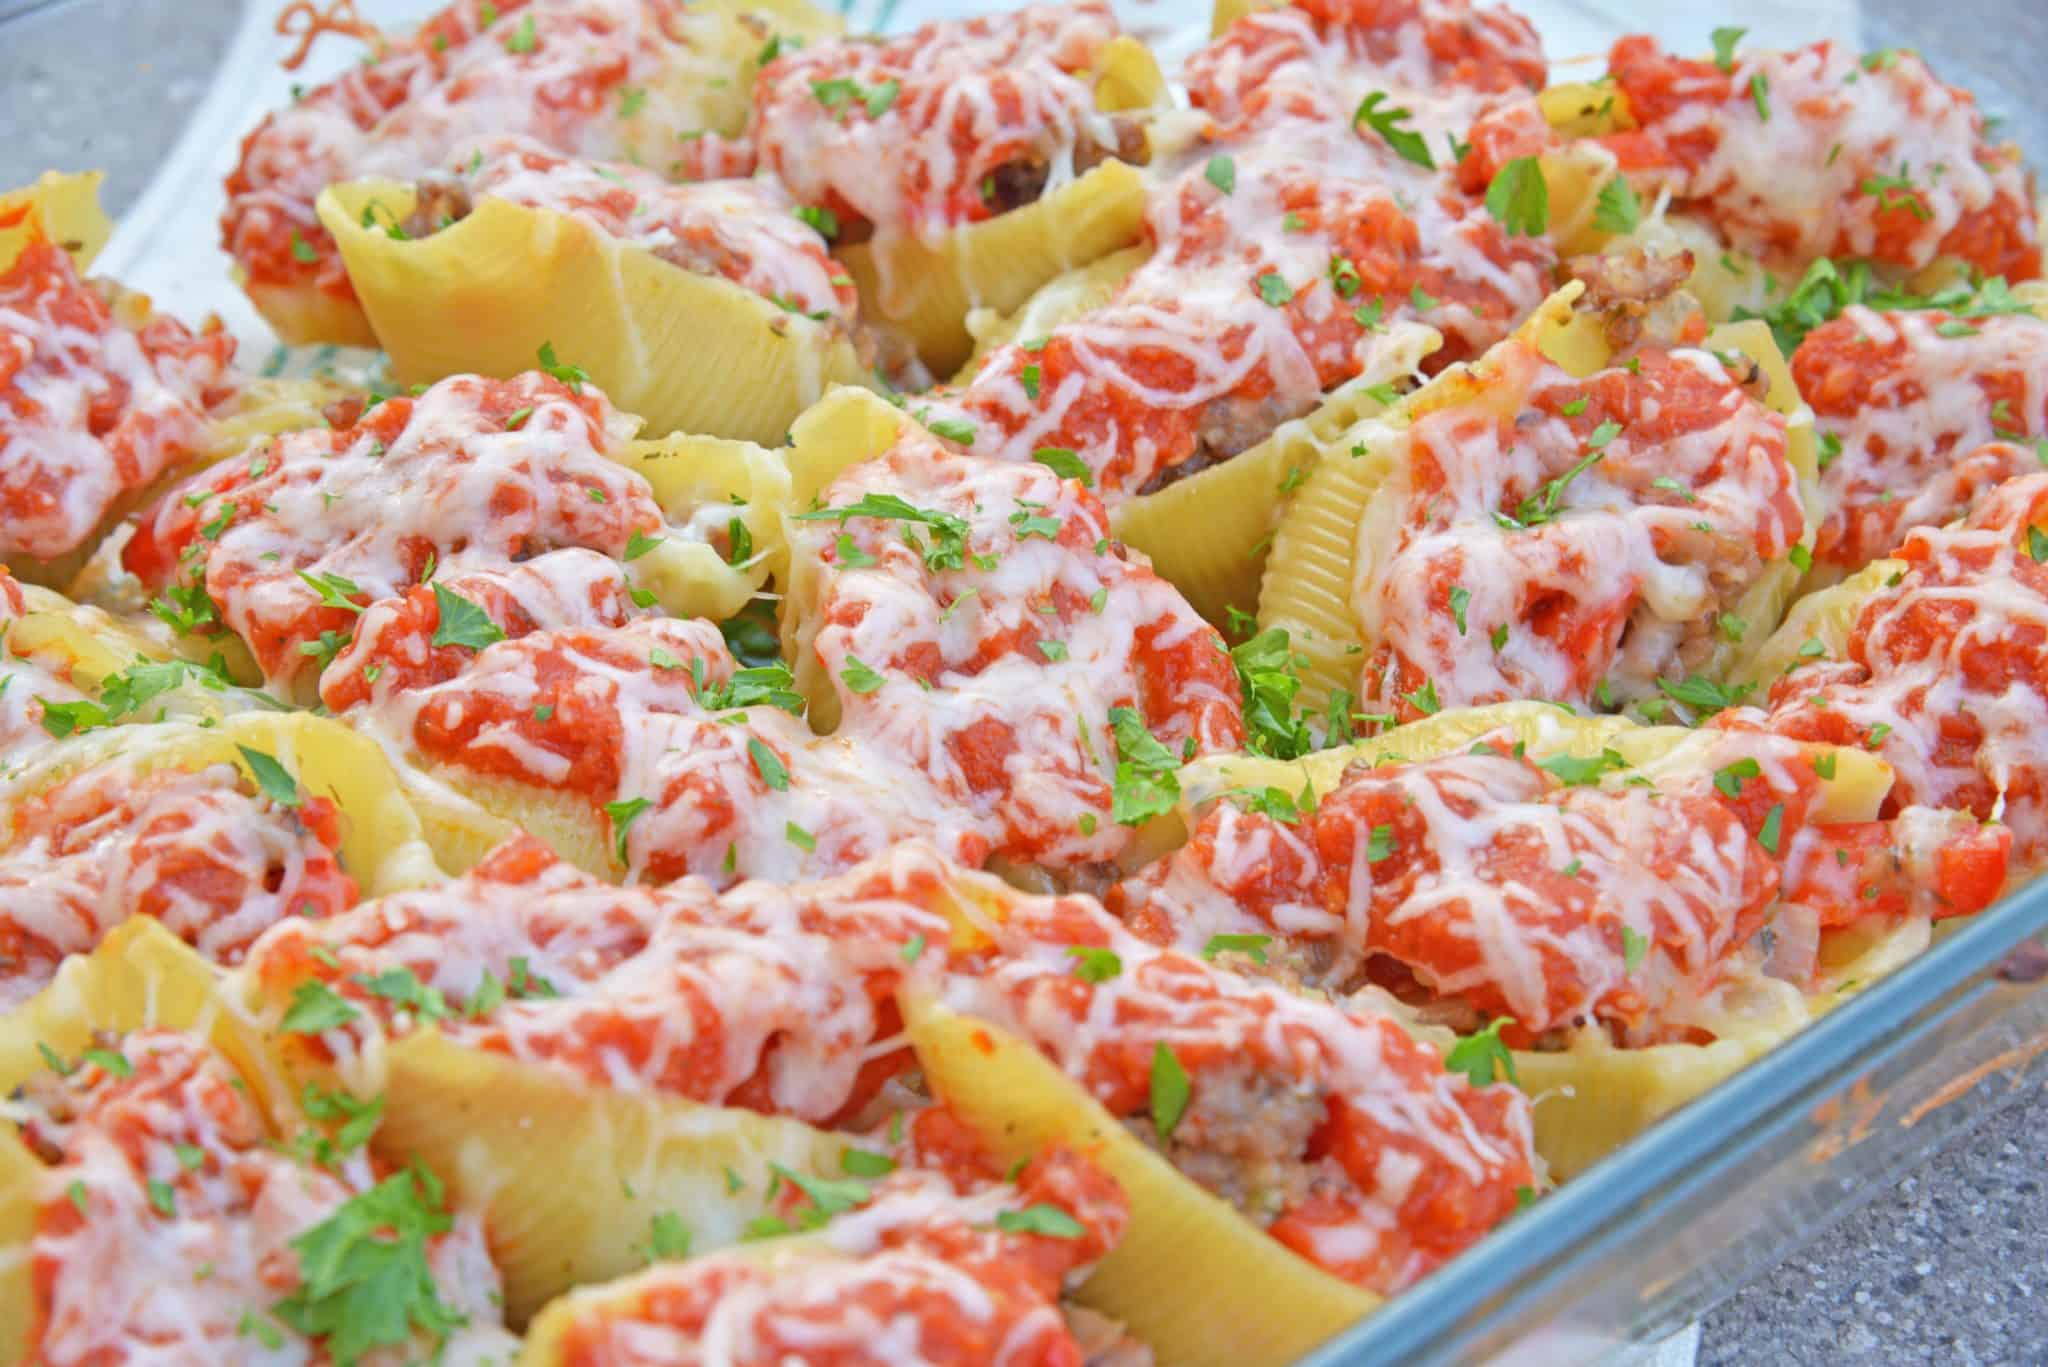 These Sausage and Peppers Stuffed Shells are a mashup of two fan favorites and are a fun way to spice up any weekday meal. They are guaranteed to wow!